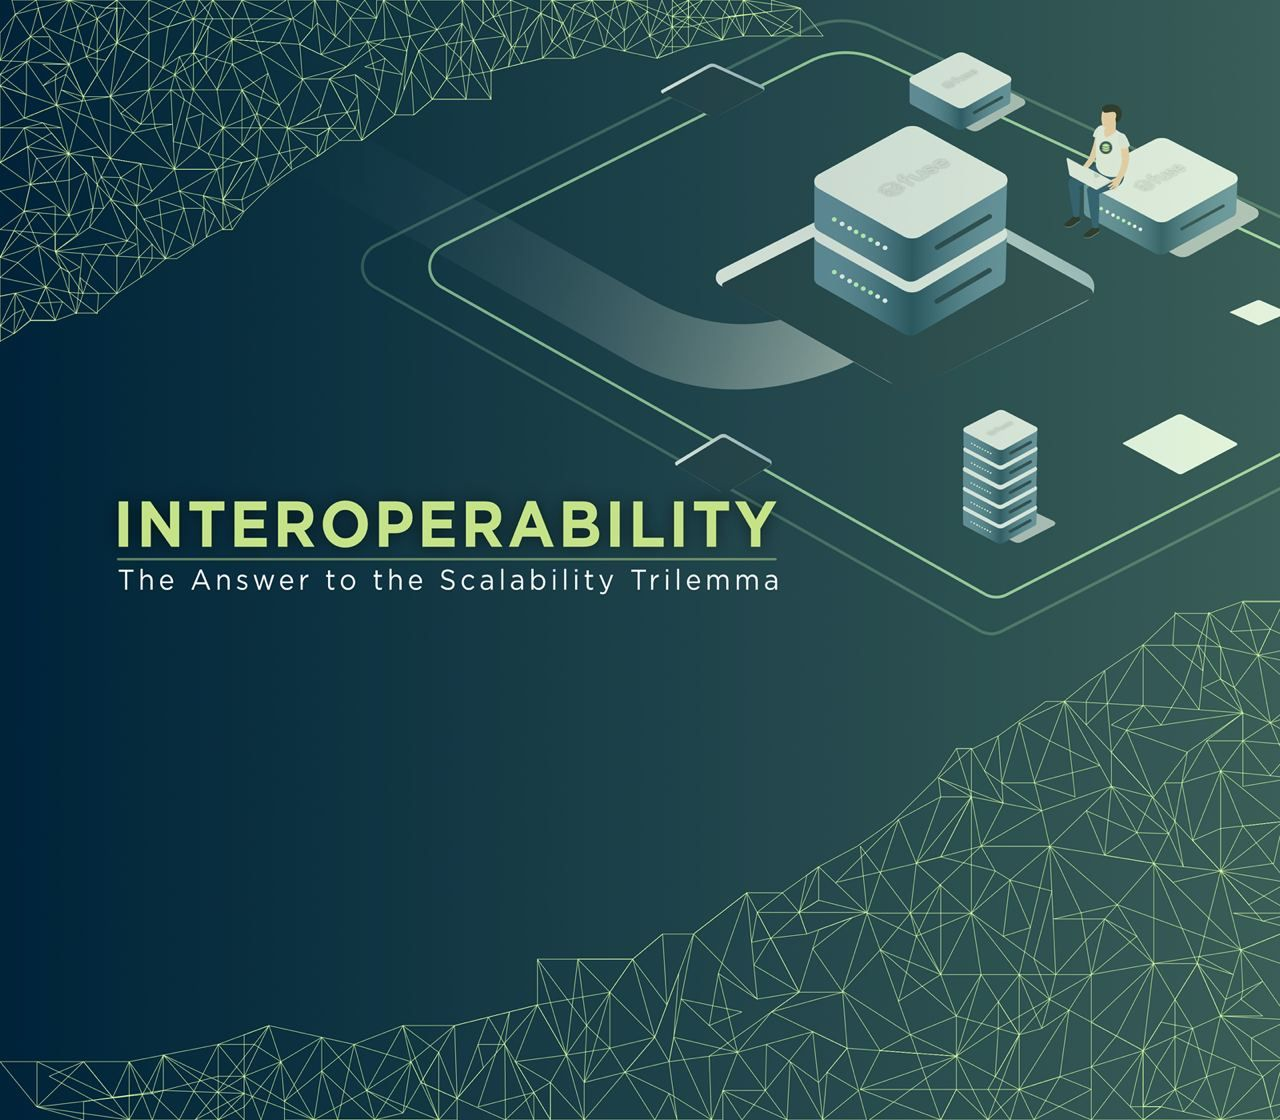 /interoperability-the-answer-to-the-scalability-trilemma-j2q33ea feature image